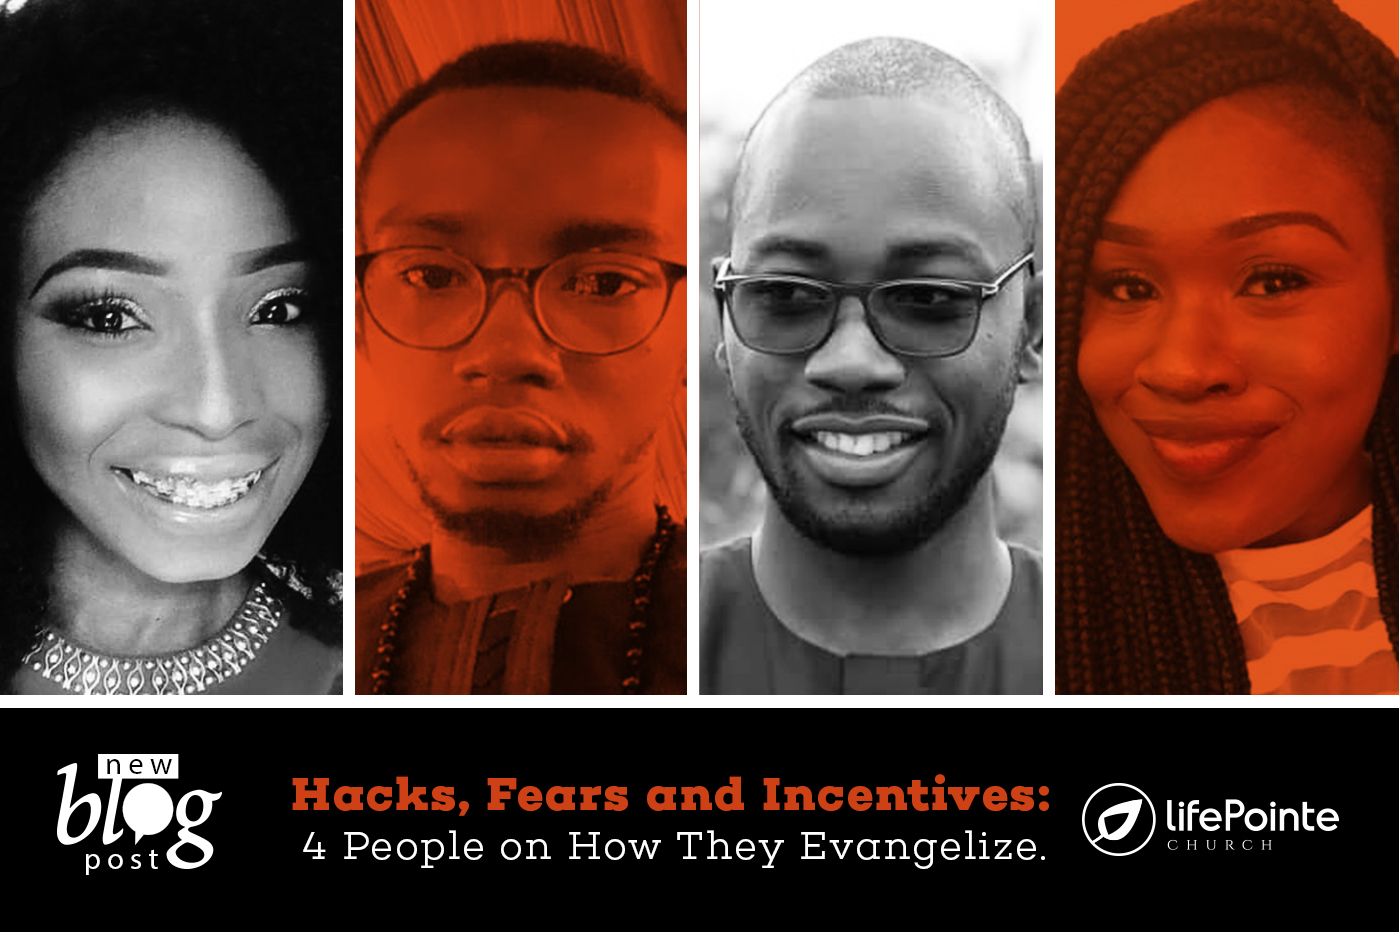 Hacks, Fears and Incentives: 4 People on How They Evangelize